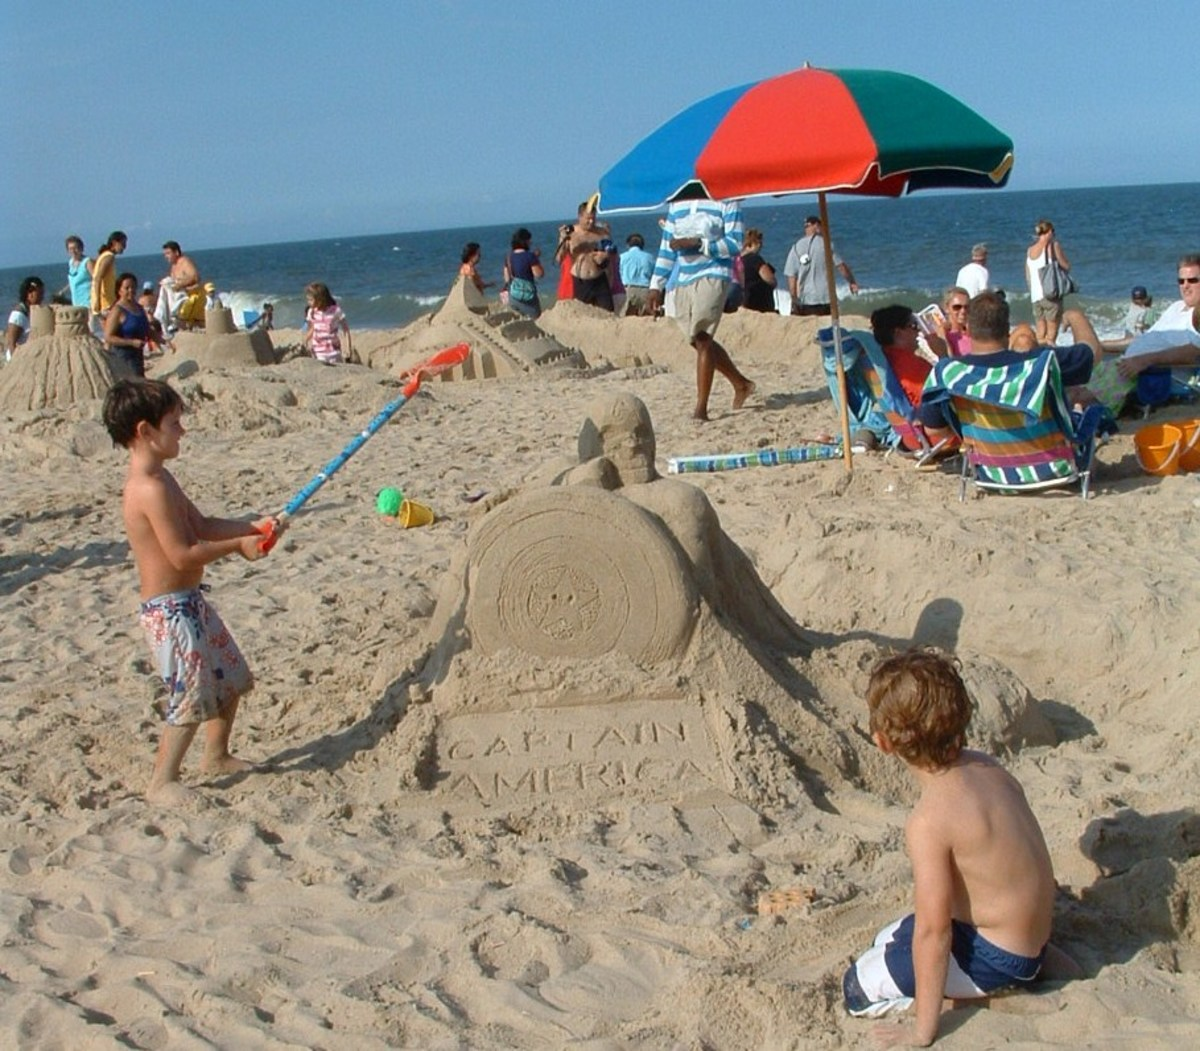 free-fun-at-the-beach-building-sand-castles-and-sand-sculptures